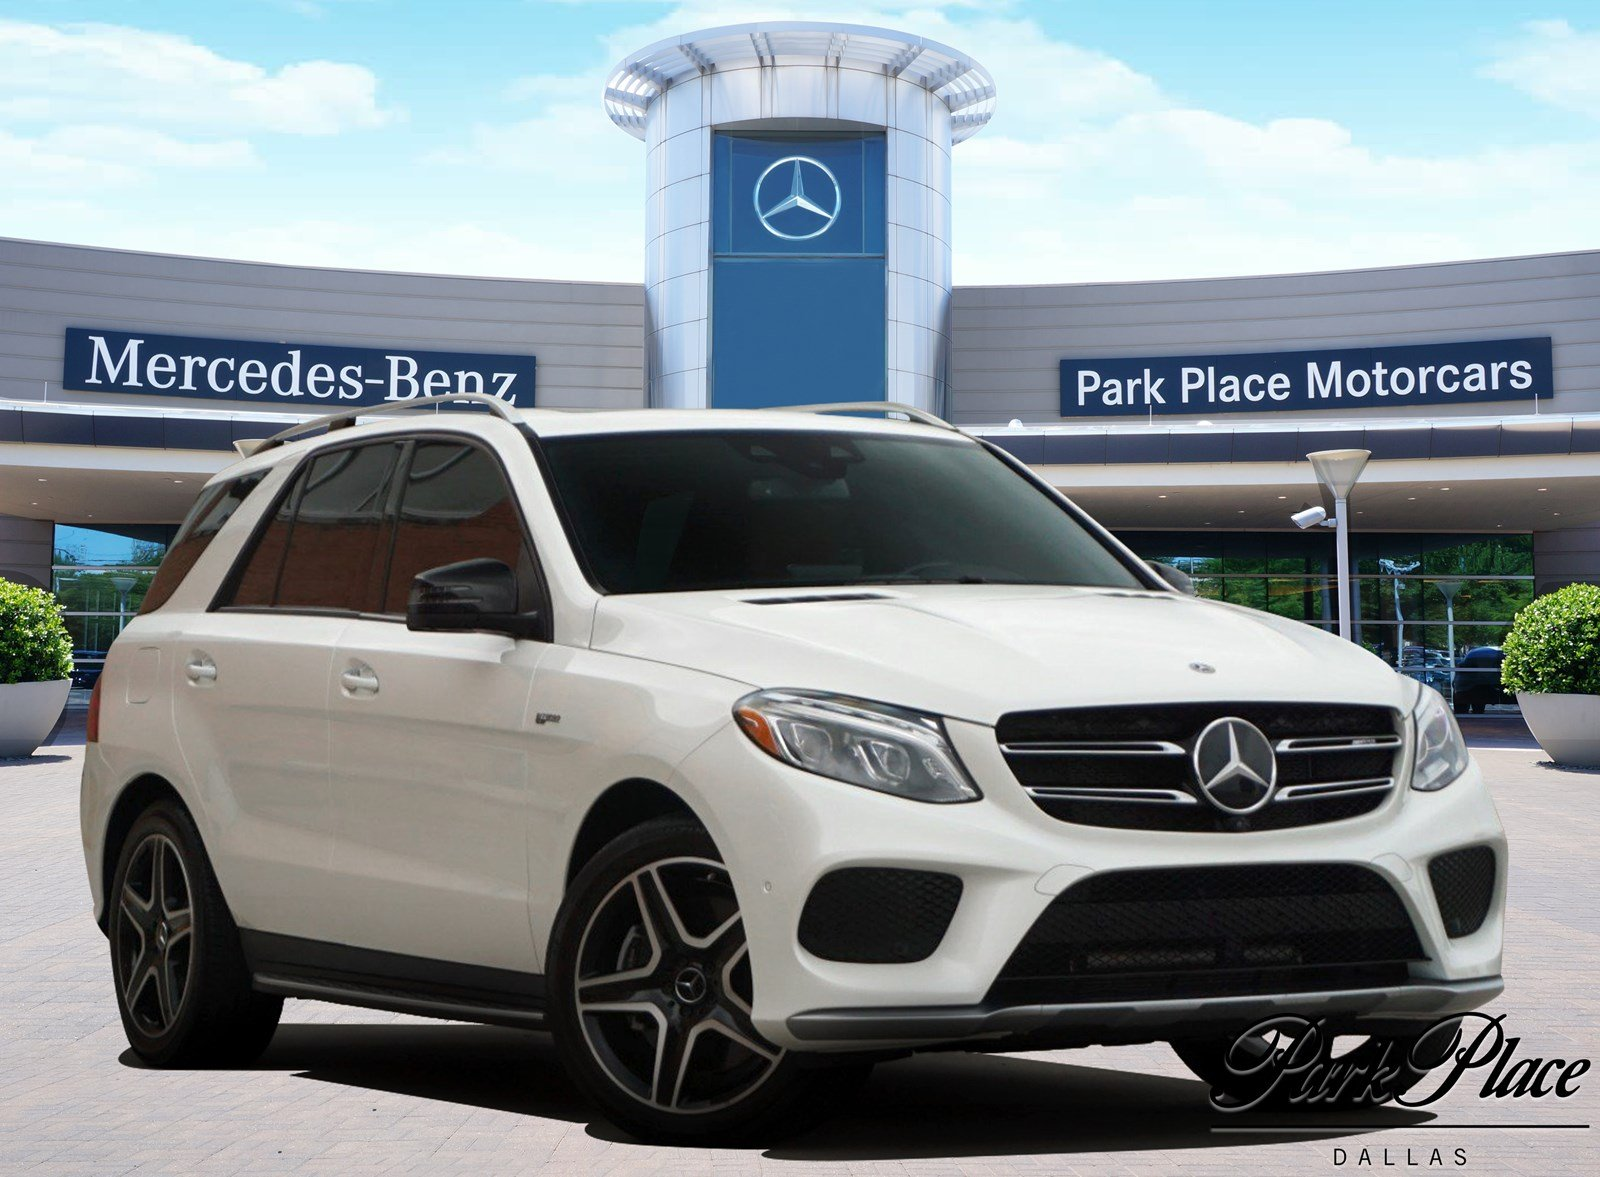 Mercedes Benz Dallas >> Used 2018 Mercedes Benz Amg Gle 43 For Sale At Park Place Motorcars Dallas Vin 4jgda6eb3jb023494